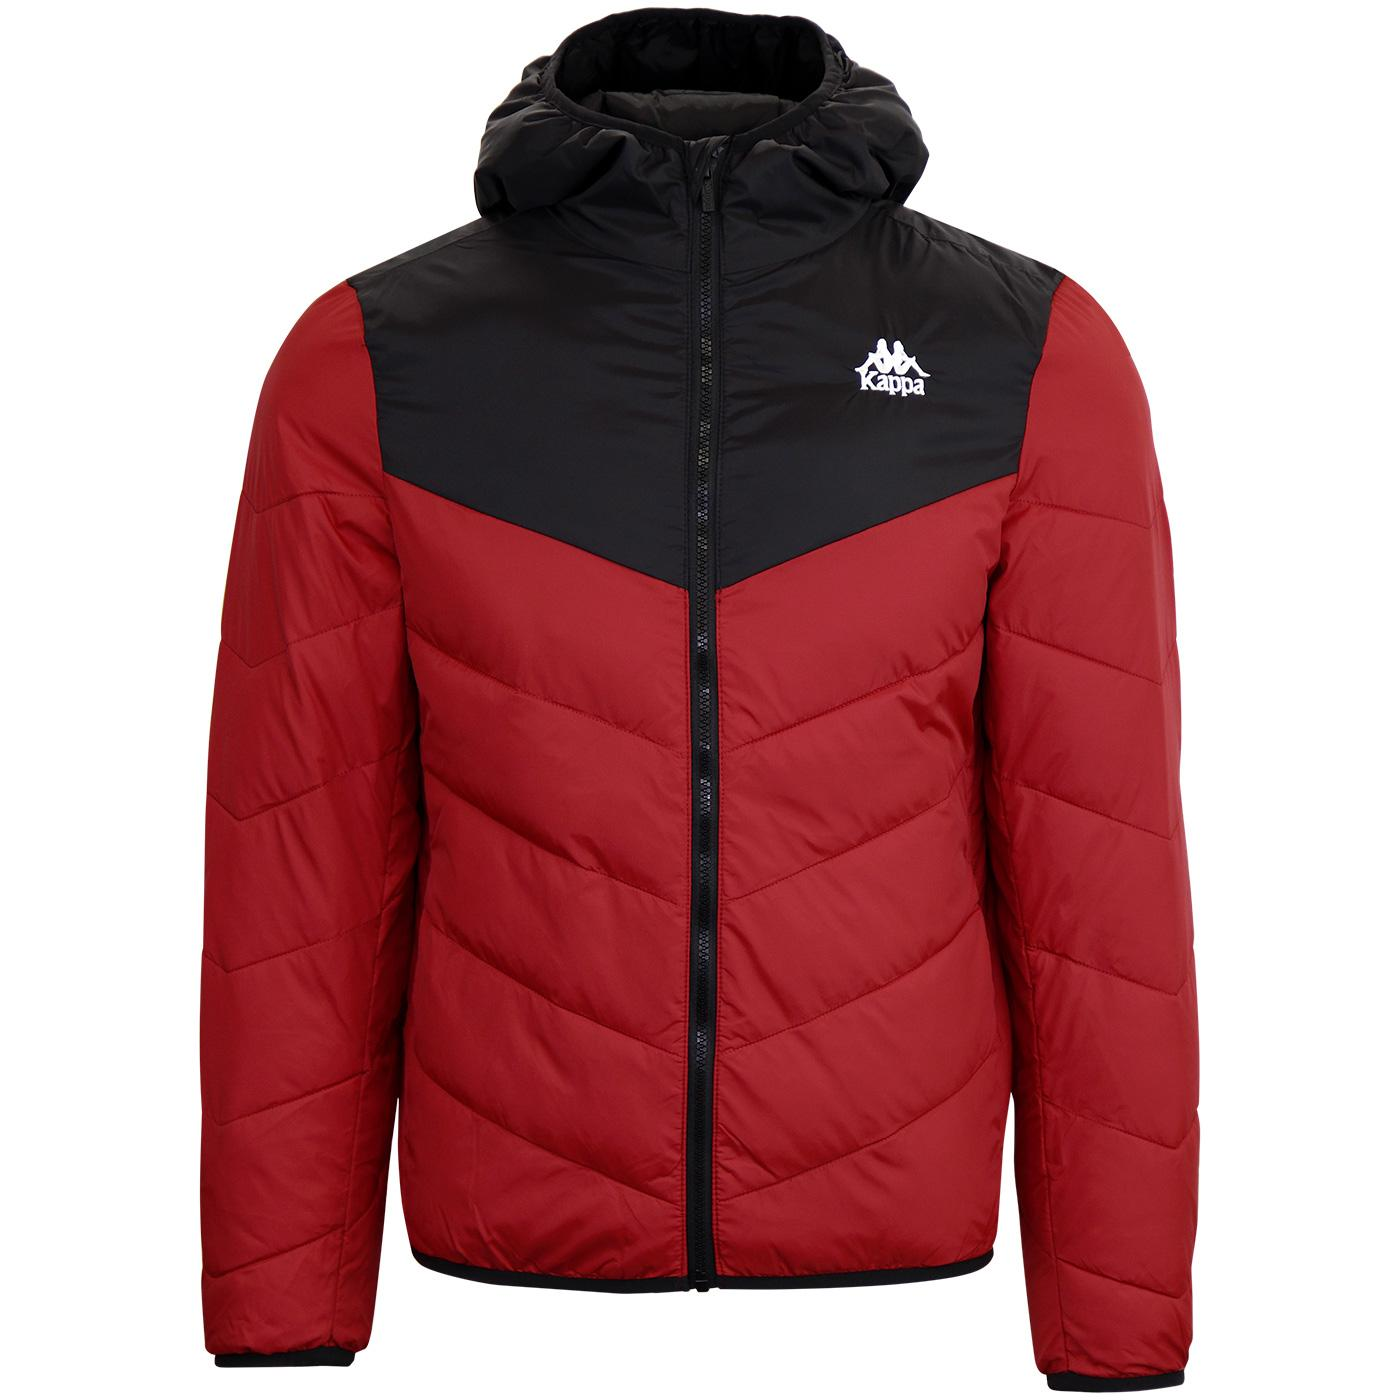 Amarit KAPPA Retro 80s Quilted Puffer Jacket Red